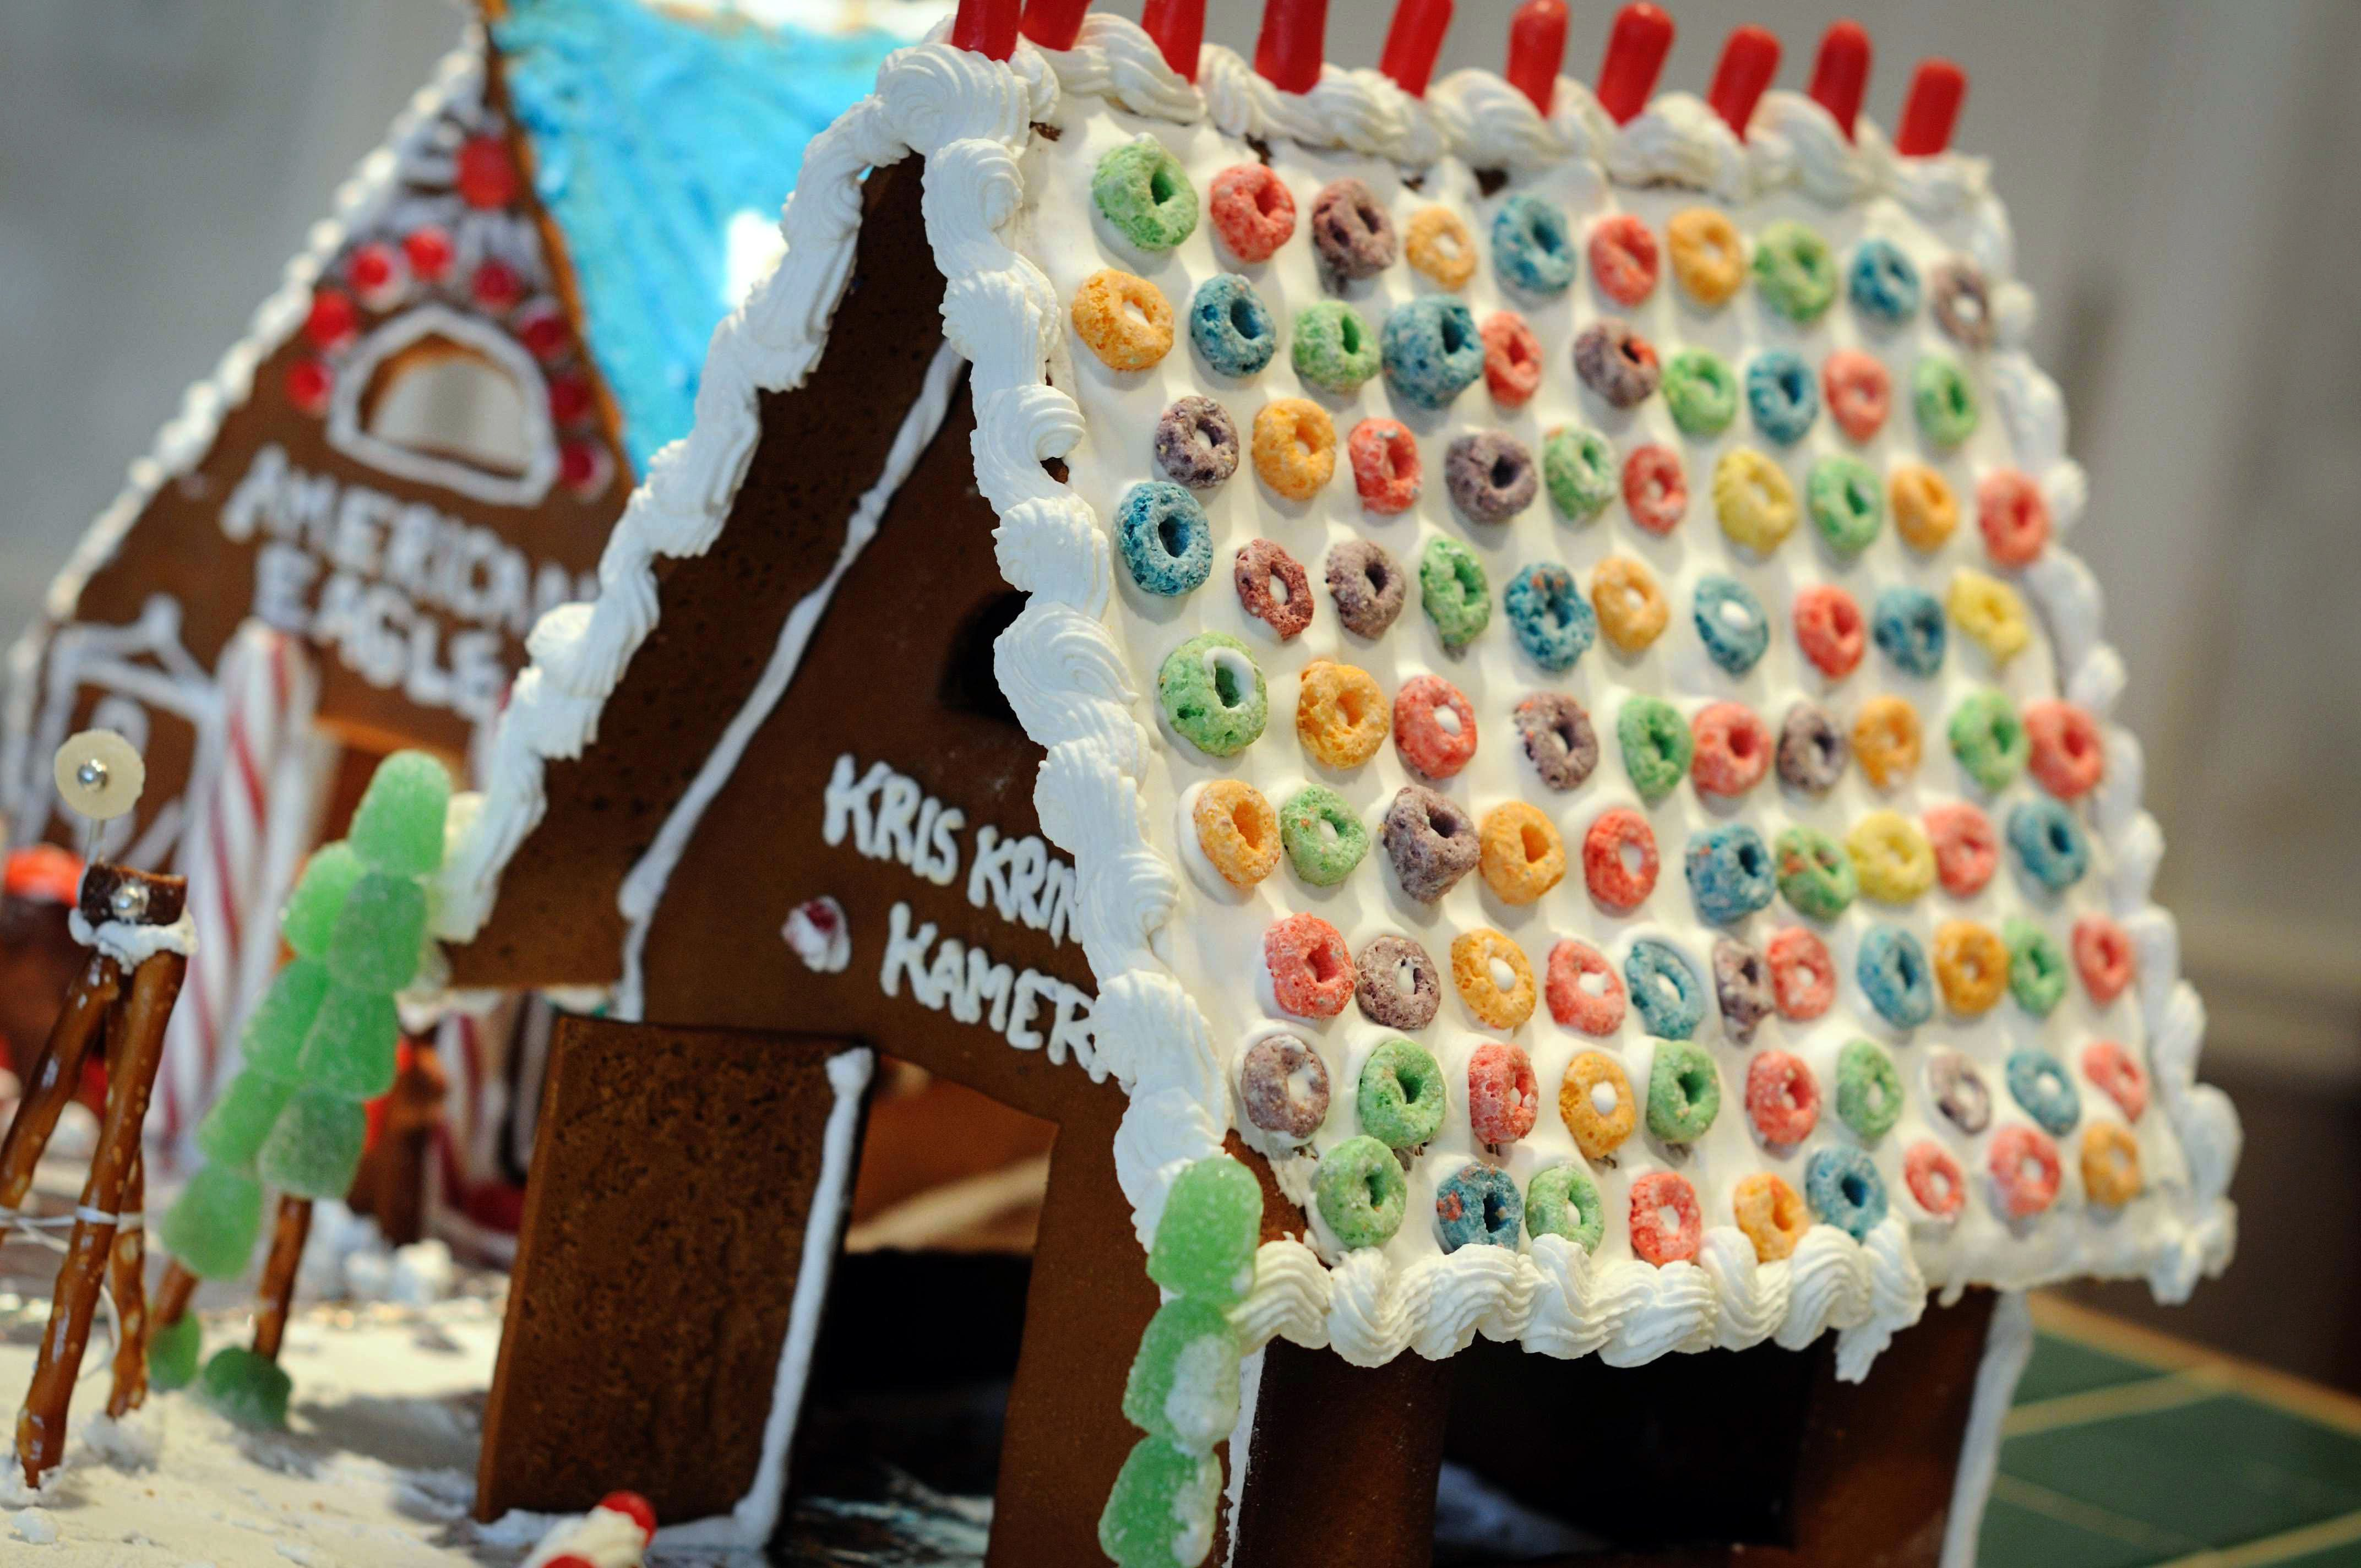 Ideas for a gingerbread house - 17 Best Images About Gingerbread Houses On Pinterest Cute House The Roof And Wafer Cookies